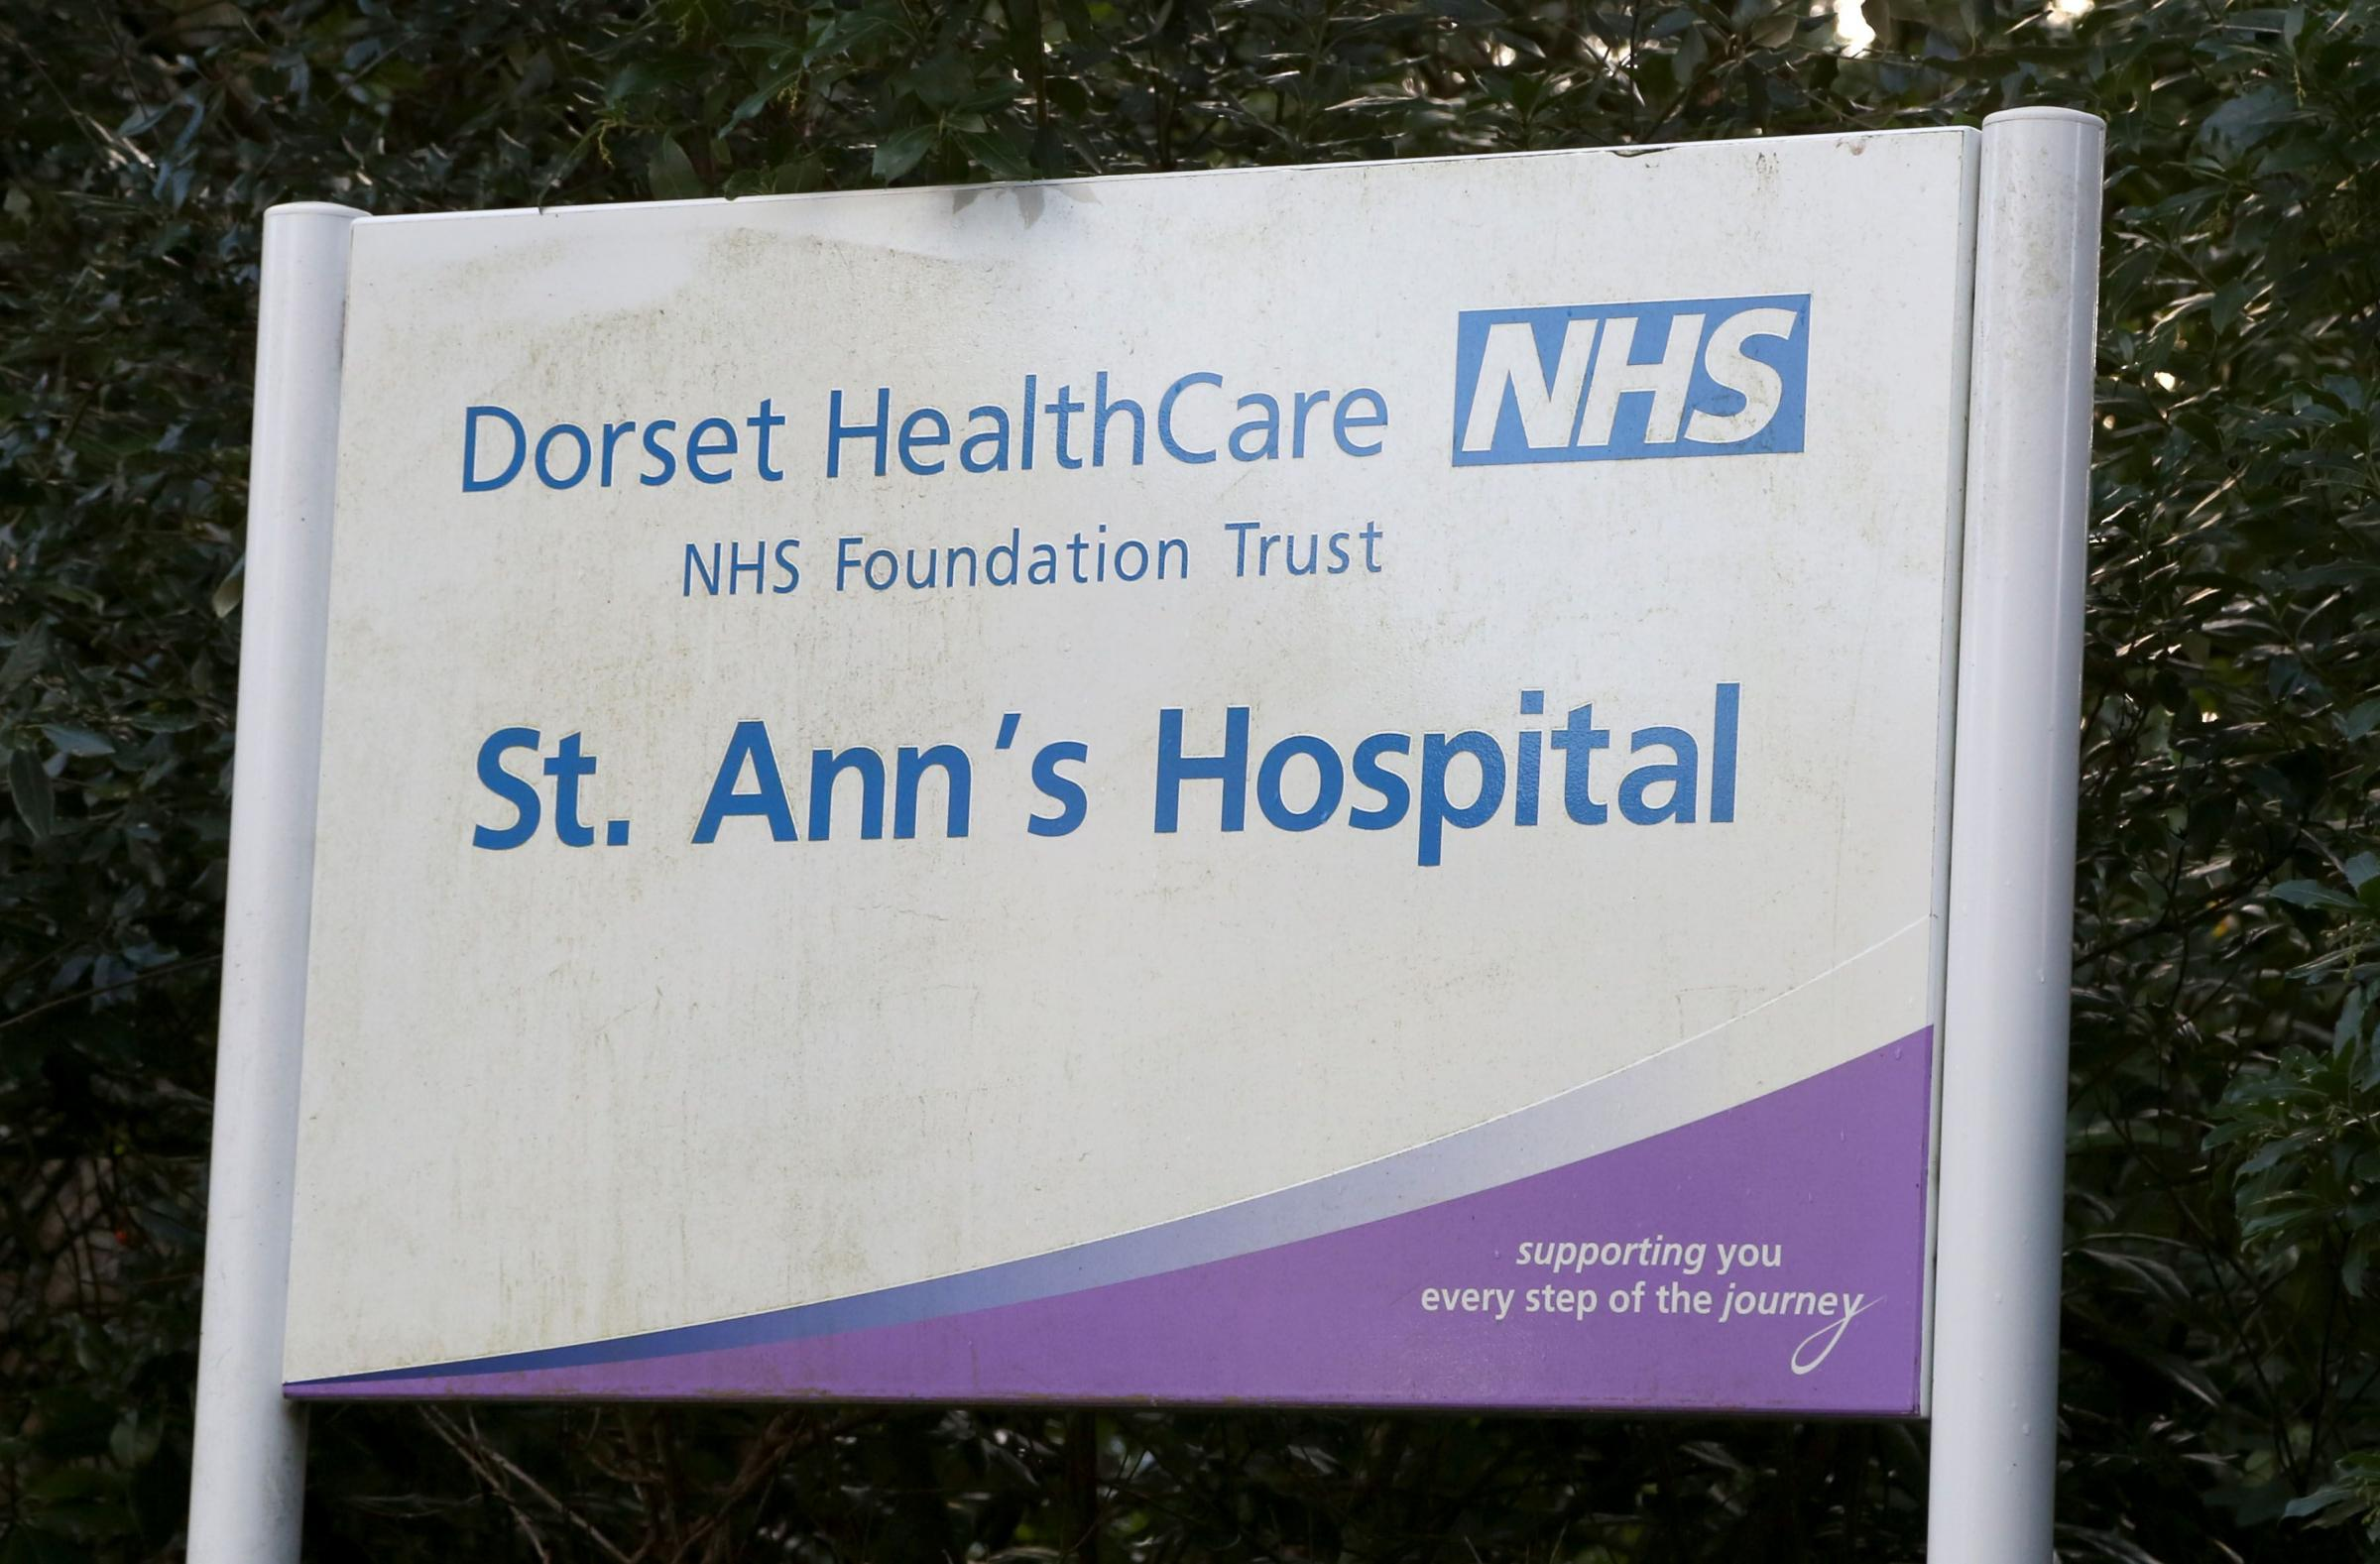 St Ann's Hospital in Poole.